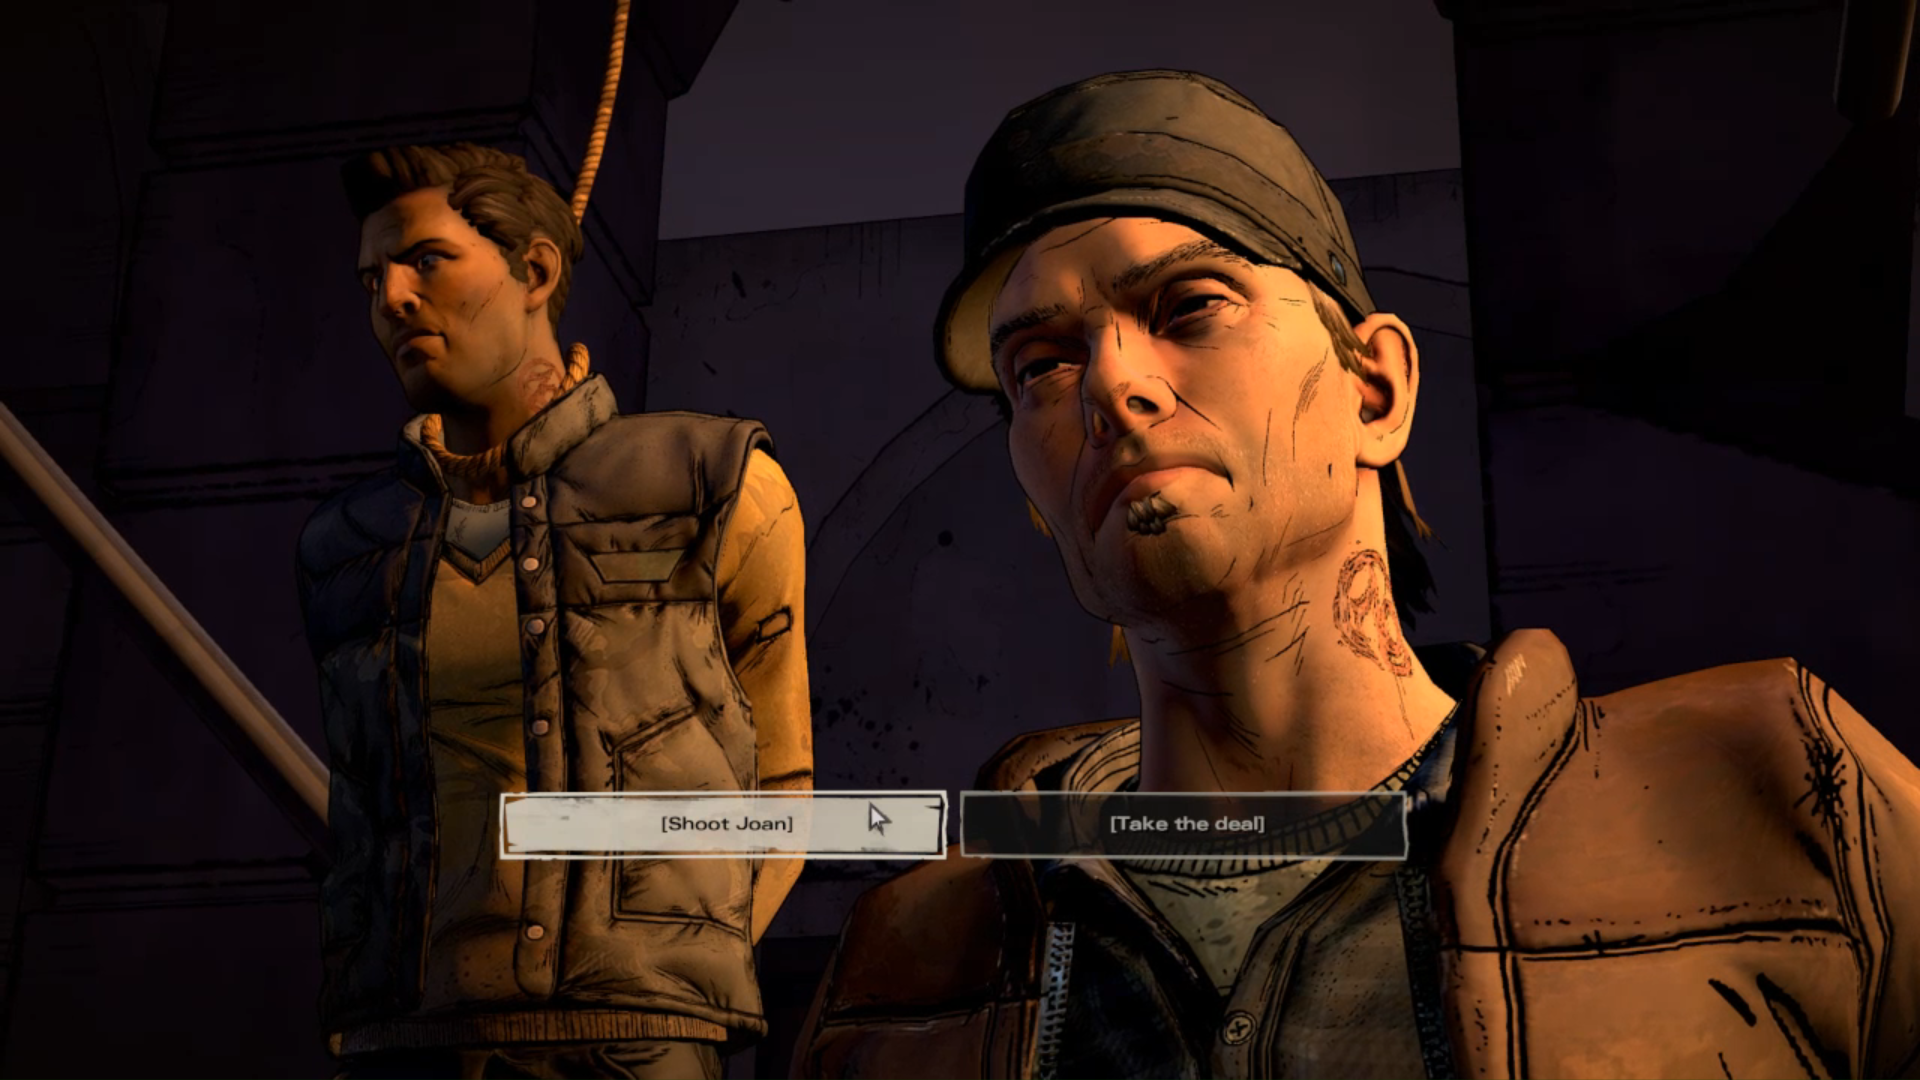 The fifth and the final choice takes place promptly after the fourth one - Important Choices | Episode 4 - Episode 4: Thicker than Water - The Walking Dead: The Telltale Series - A New Frontier Game Guide